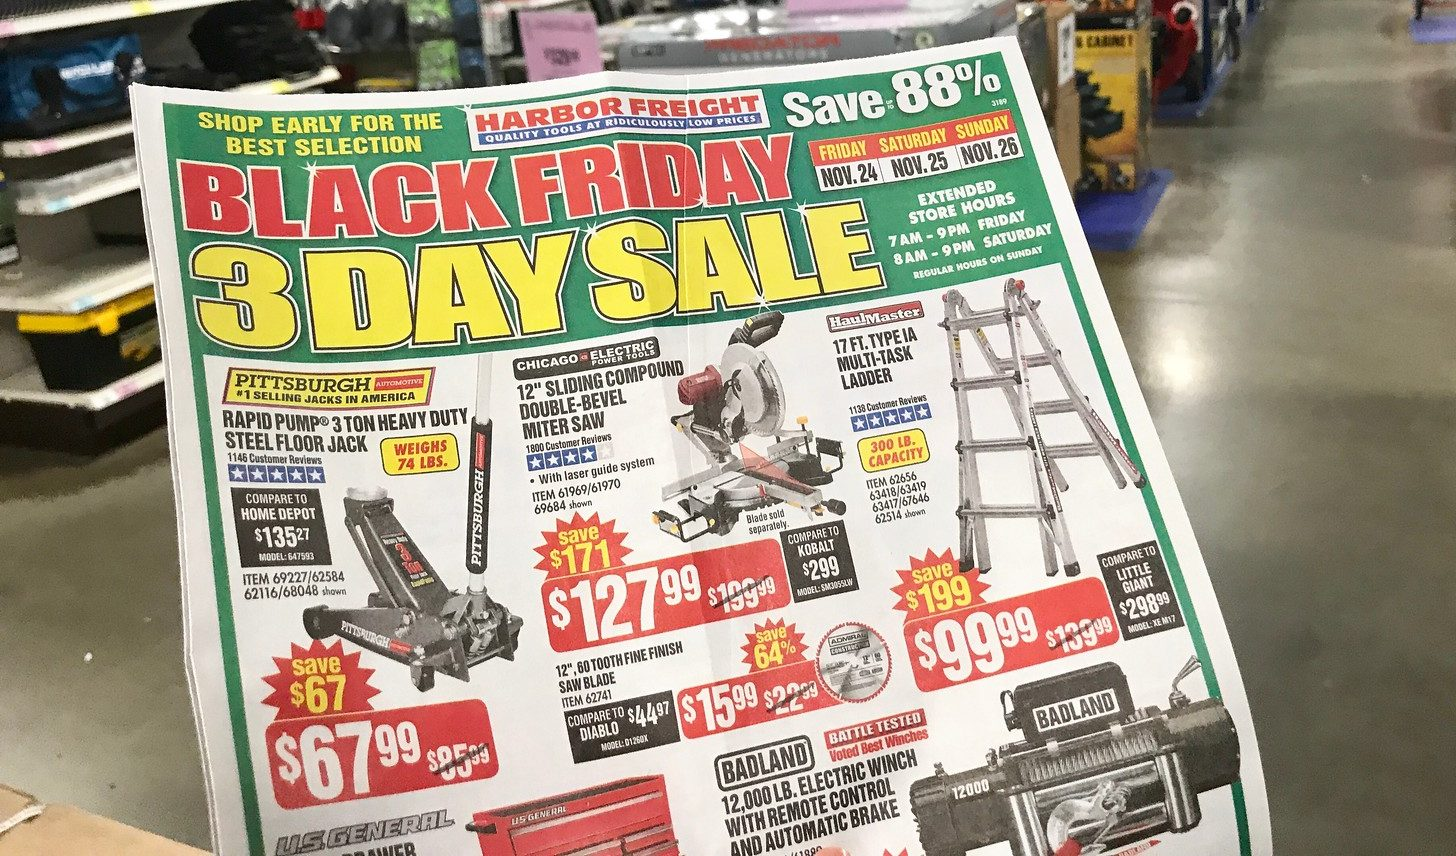 Same money with our best Black Friday Shopping Tips for 2018 – Black Friday ad scans